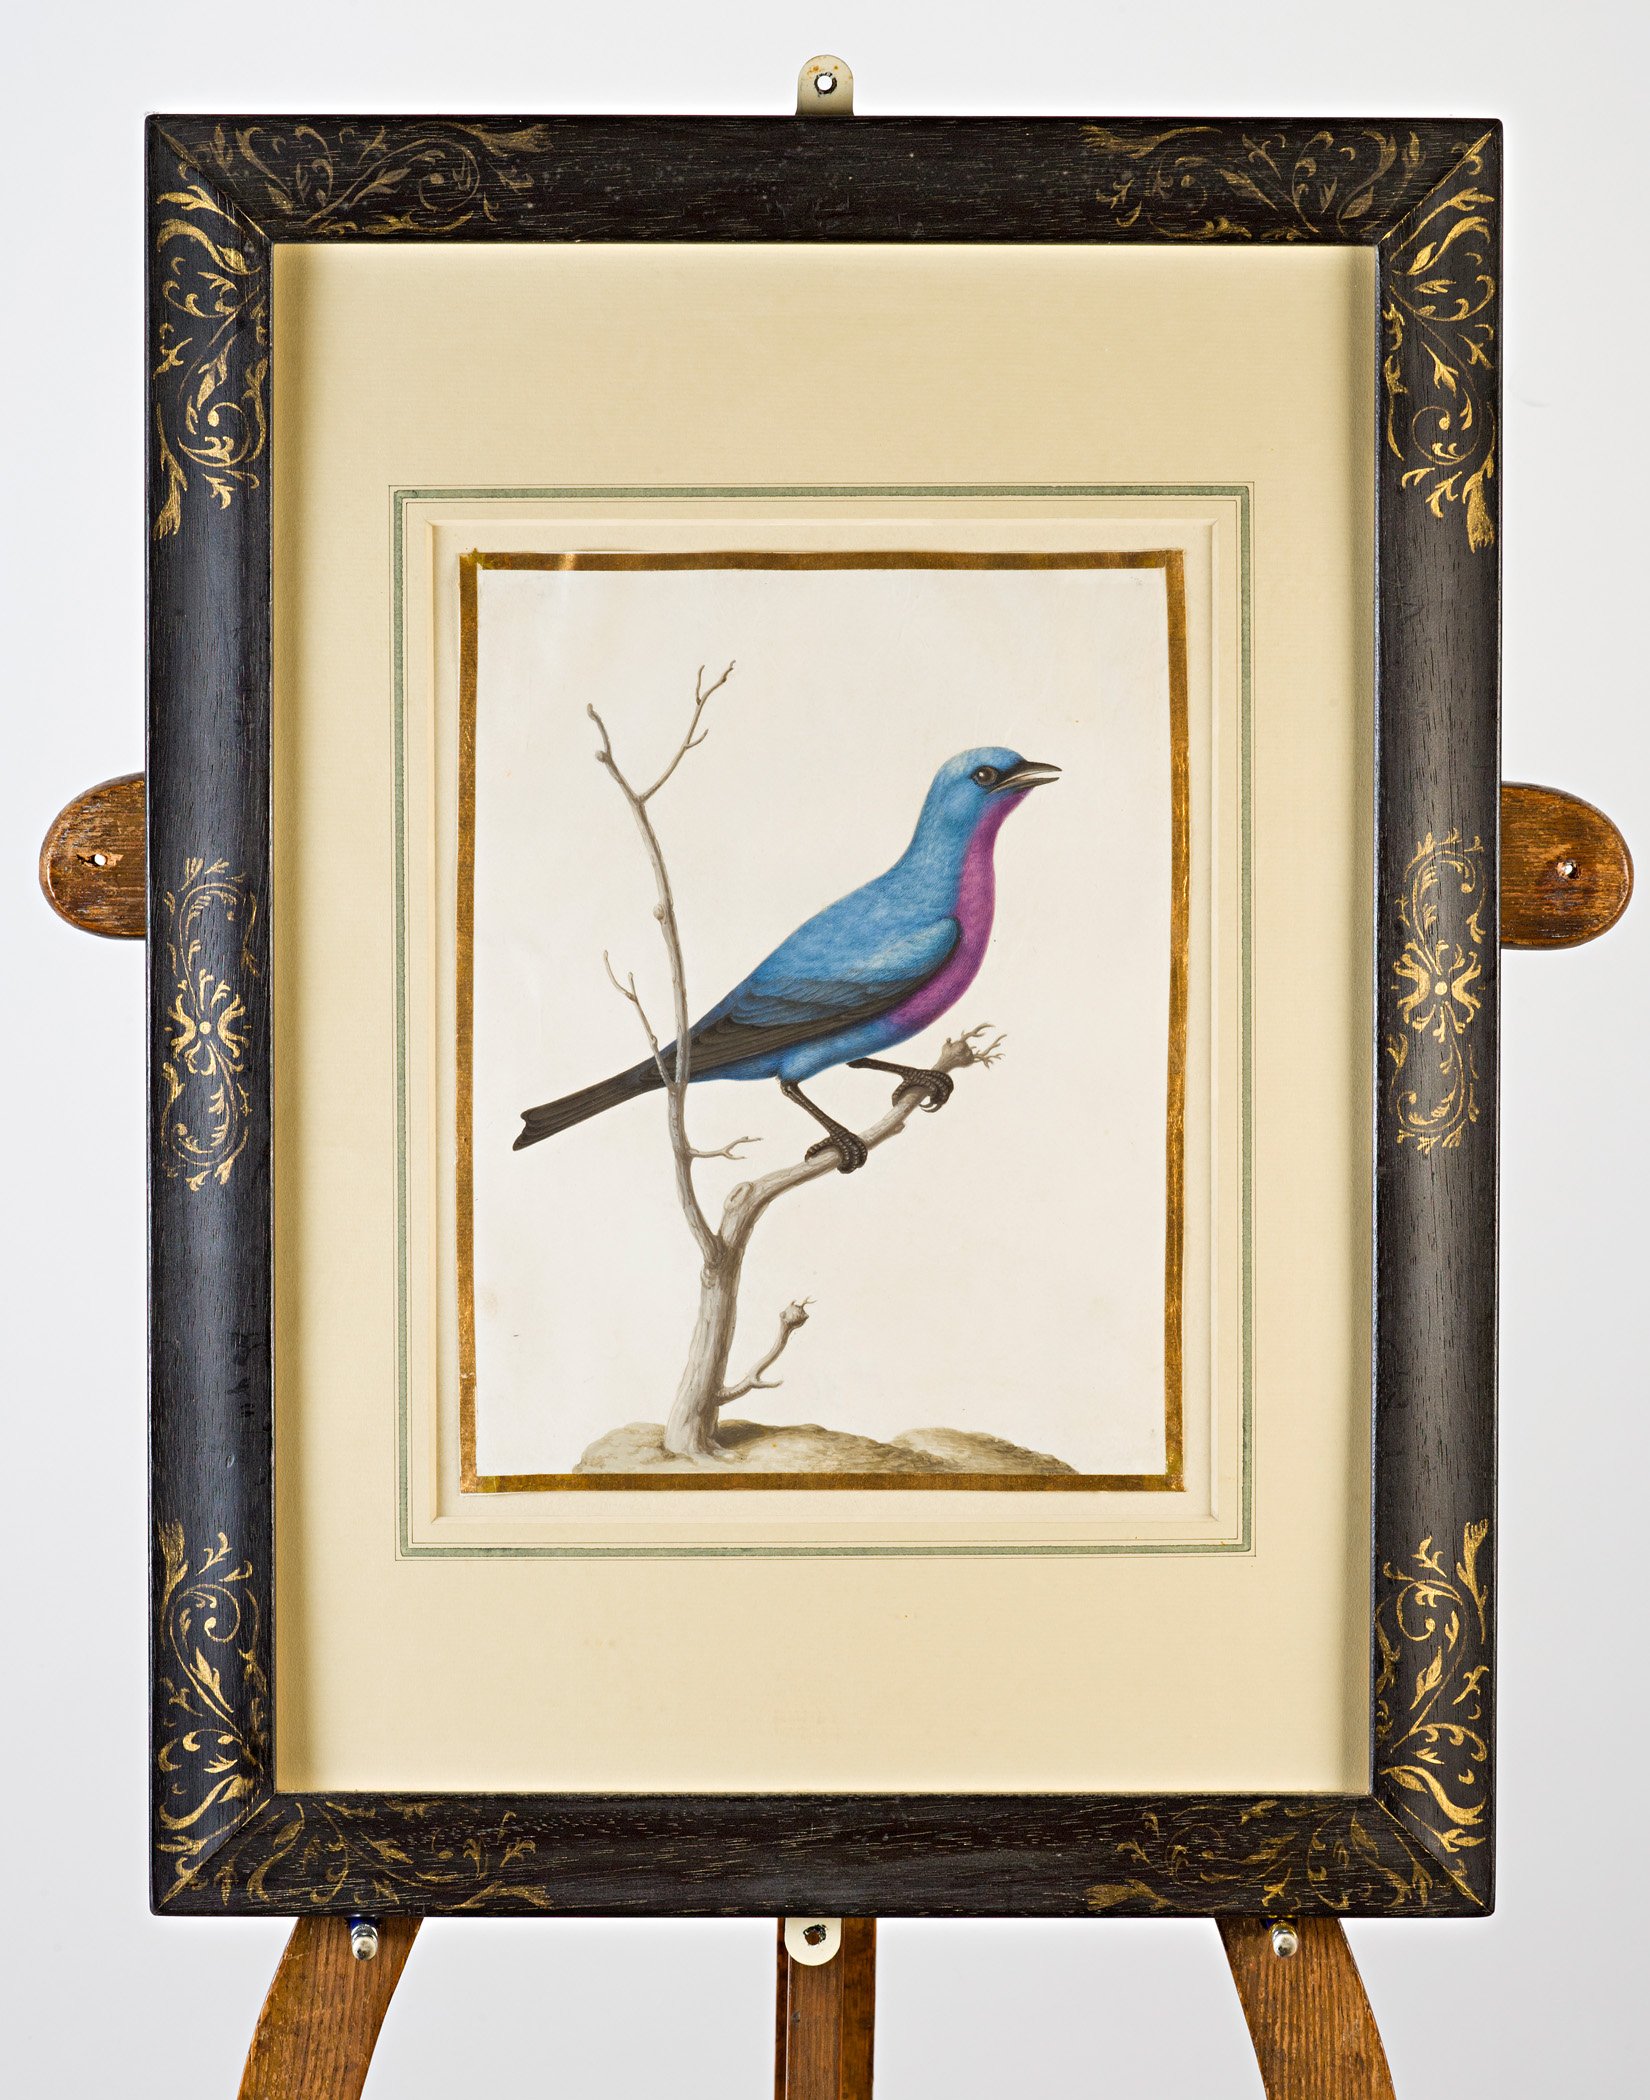 Purple-breasted bluebird, Attributed to Claude Aubriet (c.1665-1742).